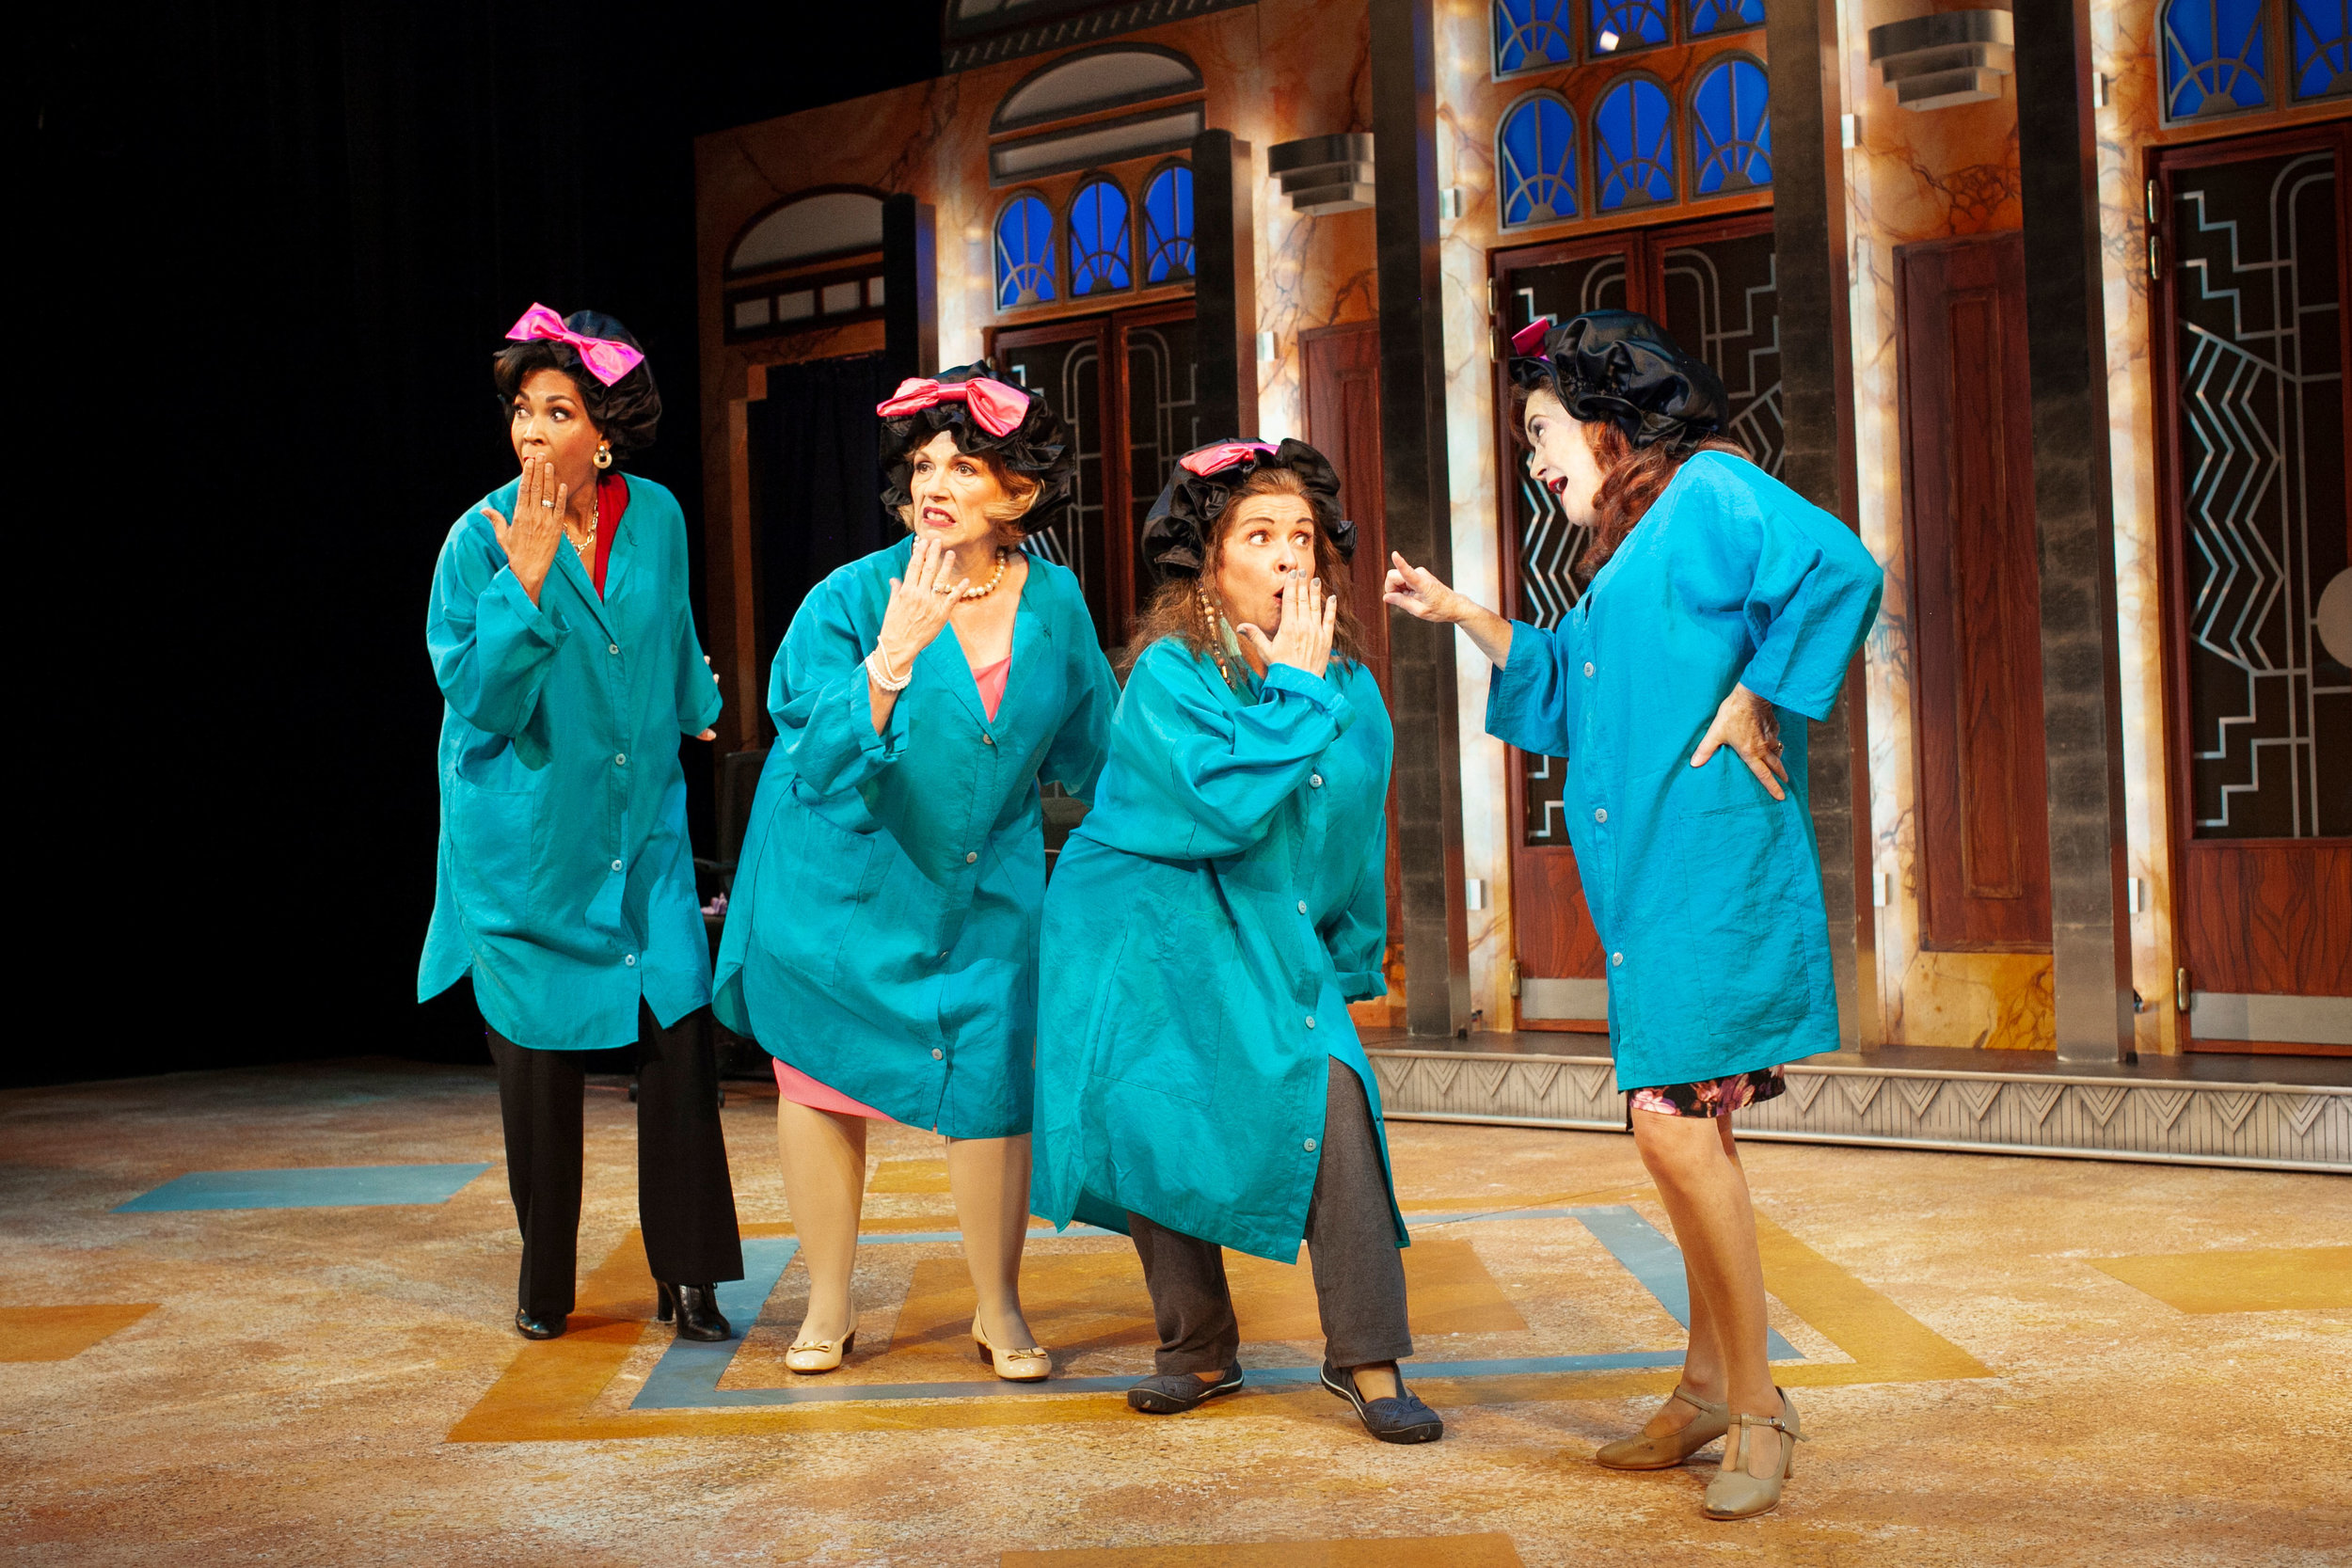 Anise Ritchie, Roberta B. Wall, Melanie Souza, and Kathy St. George in Menopause The Musical® (2019) Photo by Jay Goldsmith